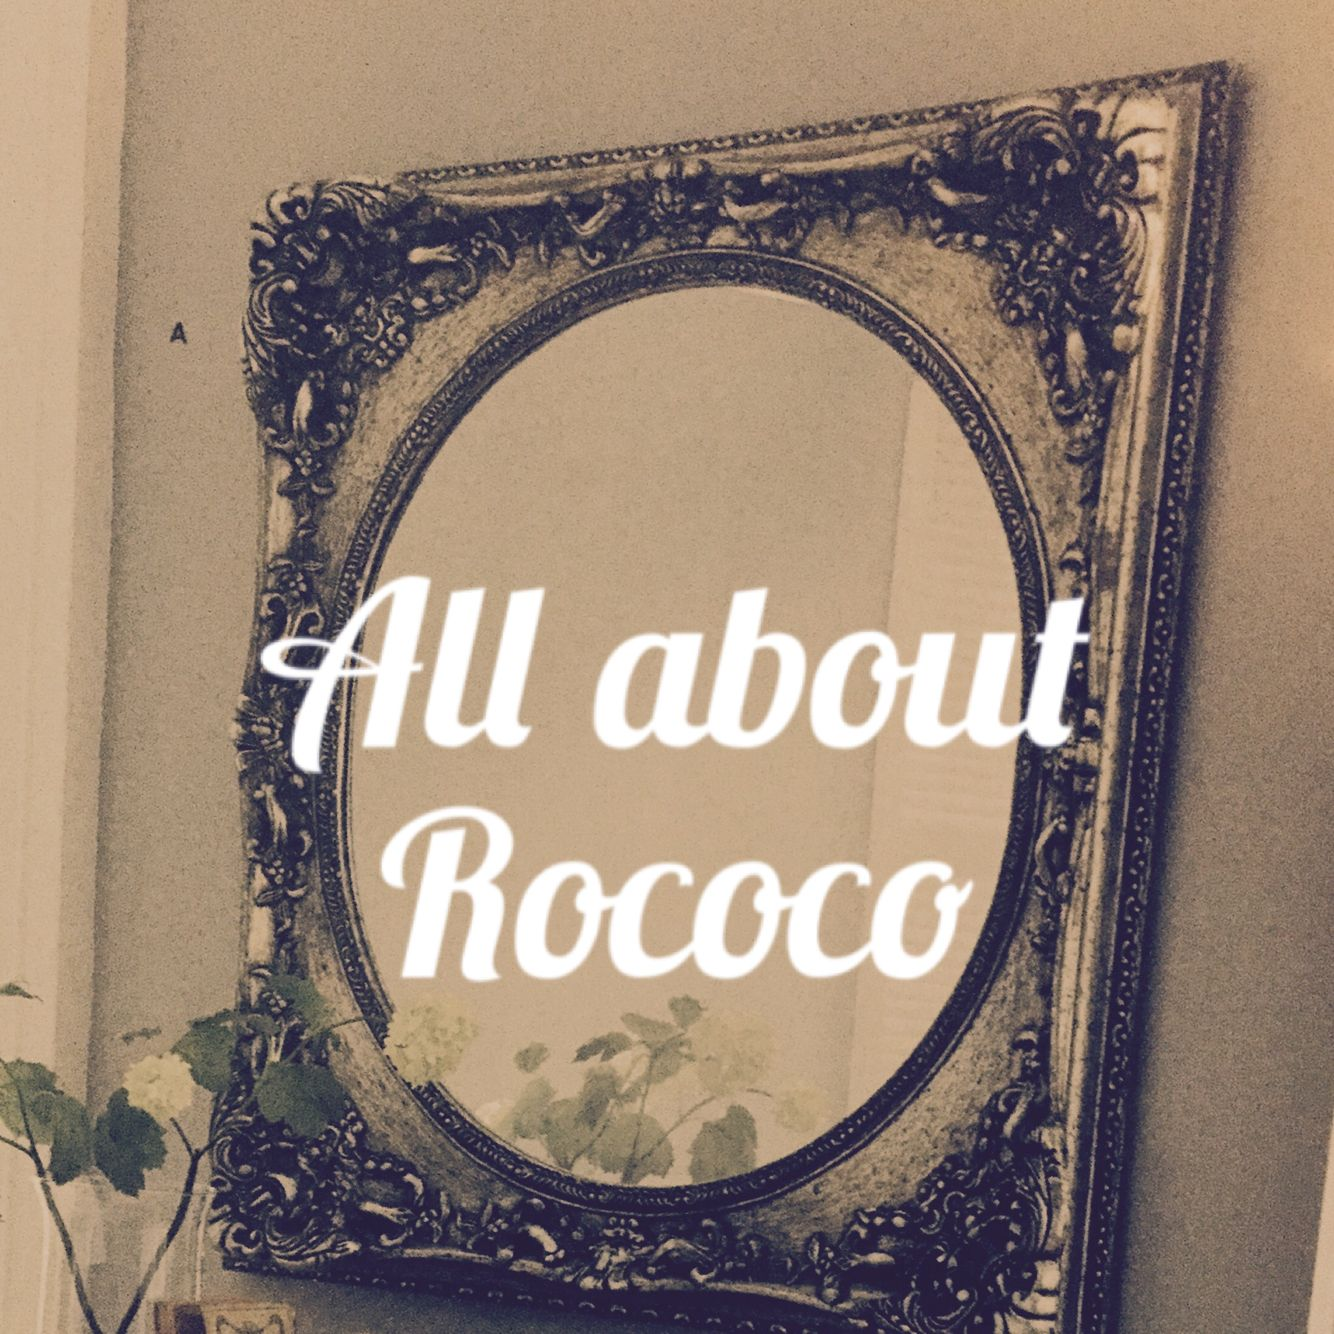 This weeks post is all about Rococo